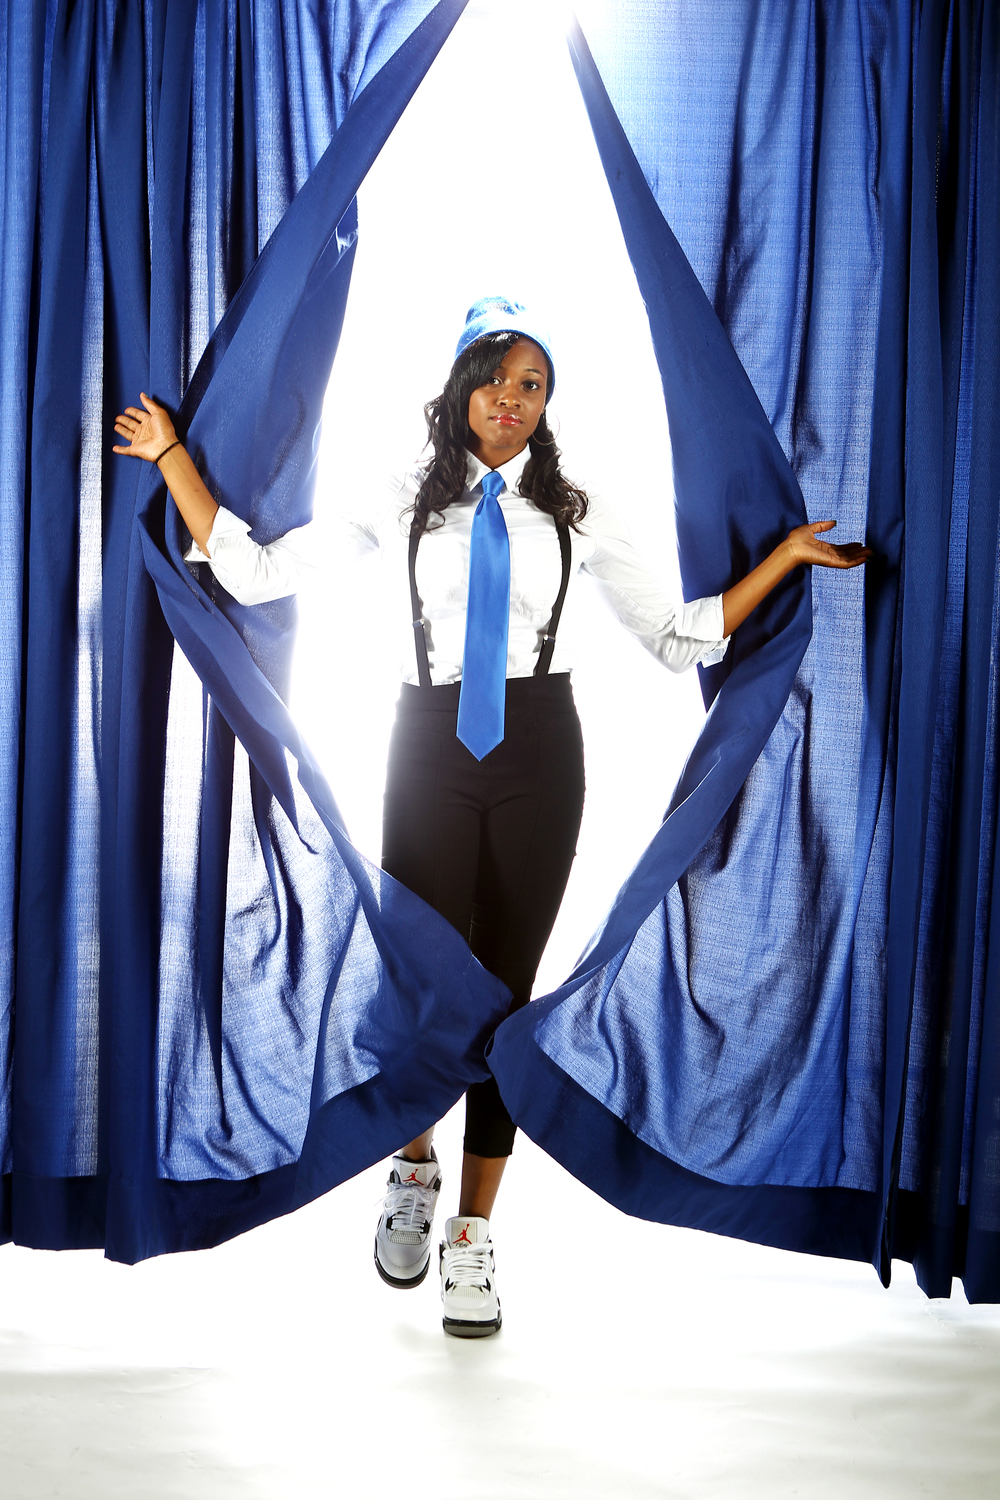 UK_wbball_outfits_457.jpg